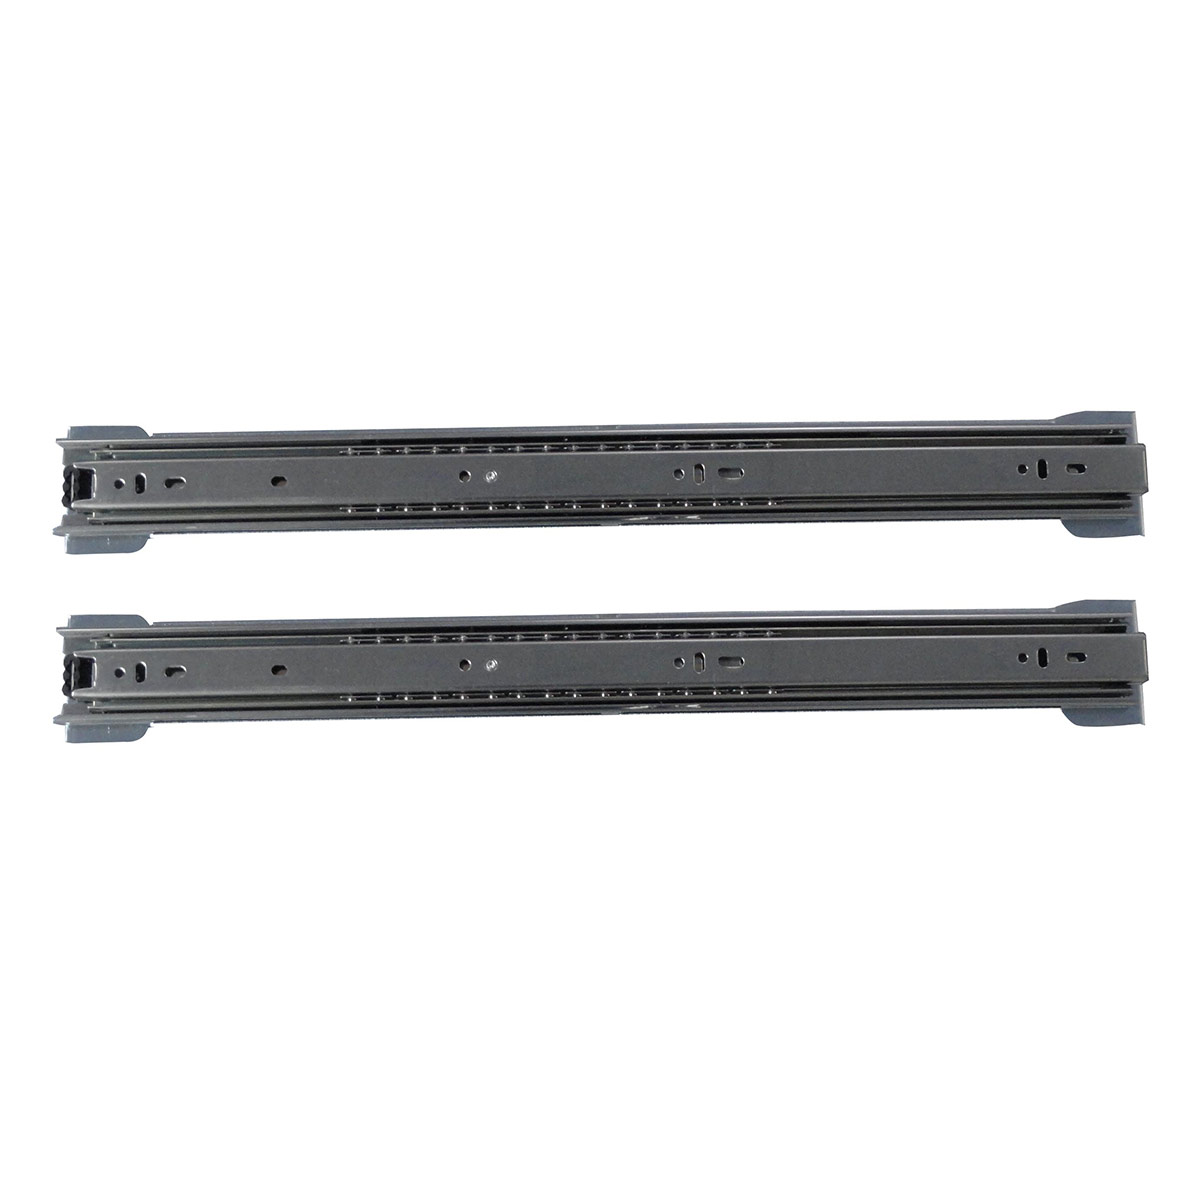 Codegen 4U Rail Kit for 500mm Rack Mount Cases - Alternative image